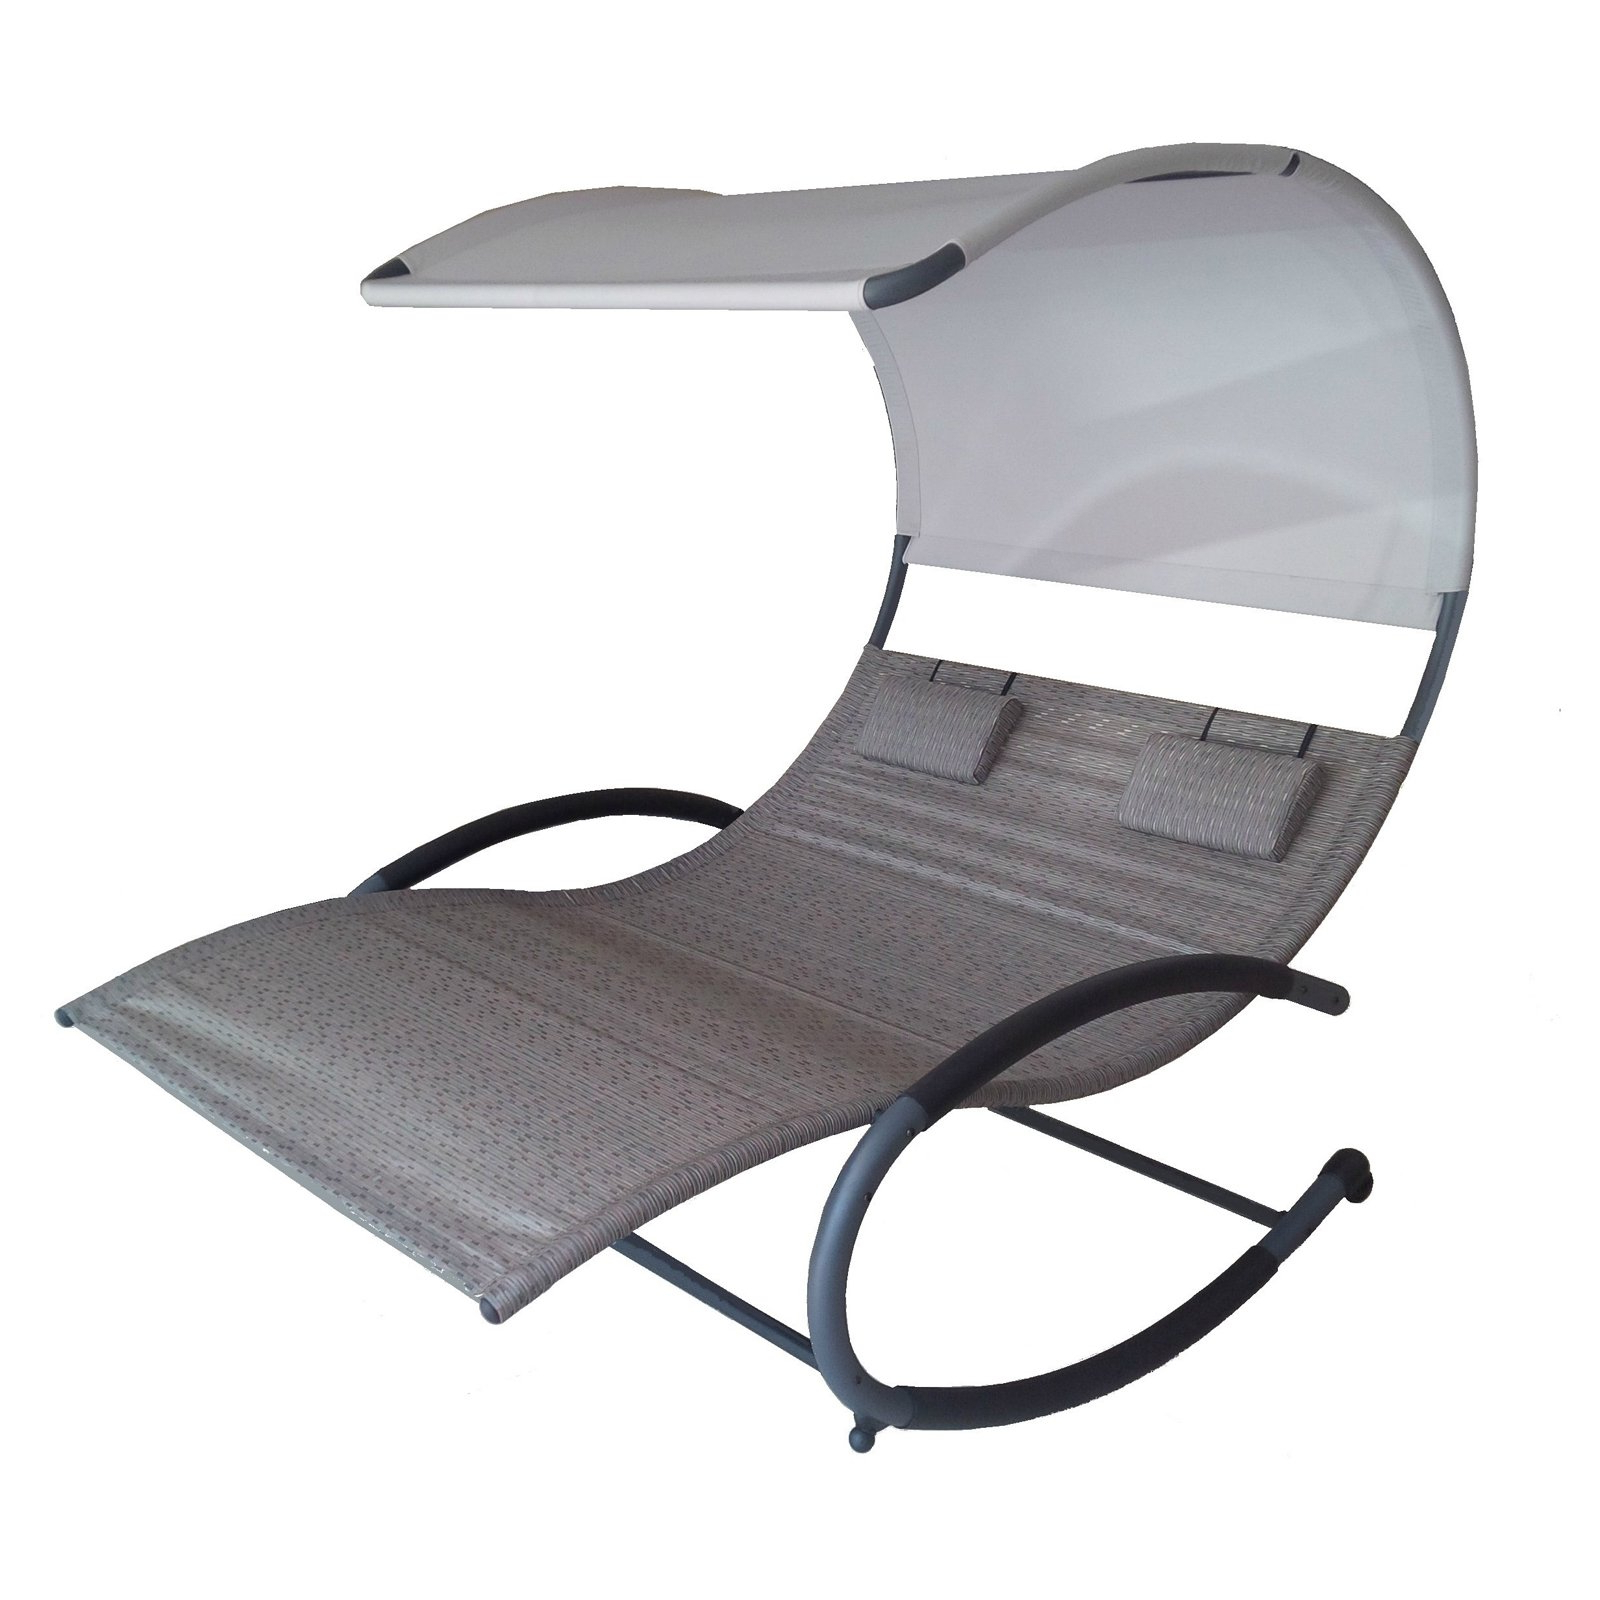 Double Reclining Lounge Chairs With Canopy Inside Current Outdoor Vivere Double Chaise Lounge Rocker With Canopy (View 17 of 25)